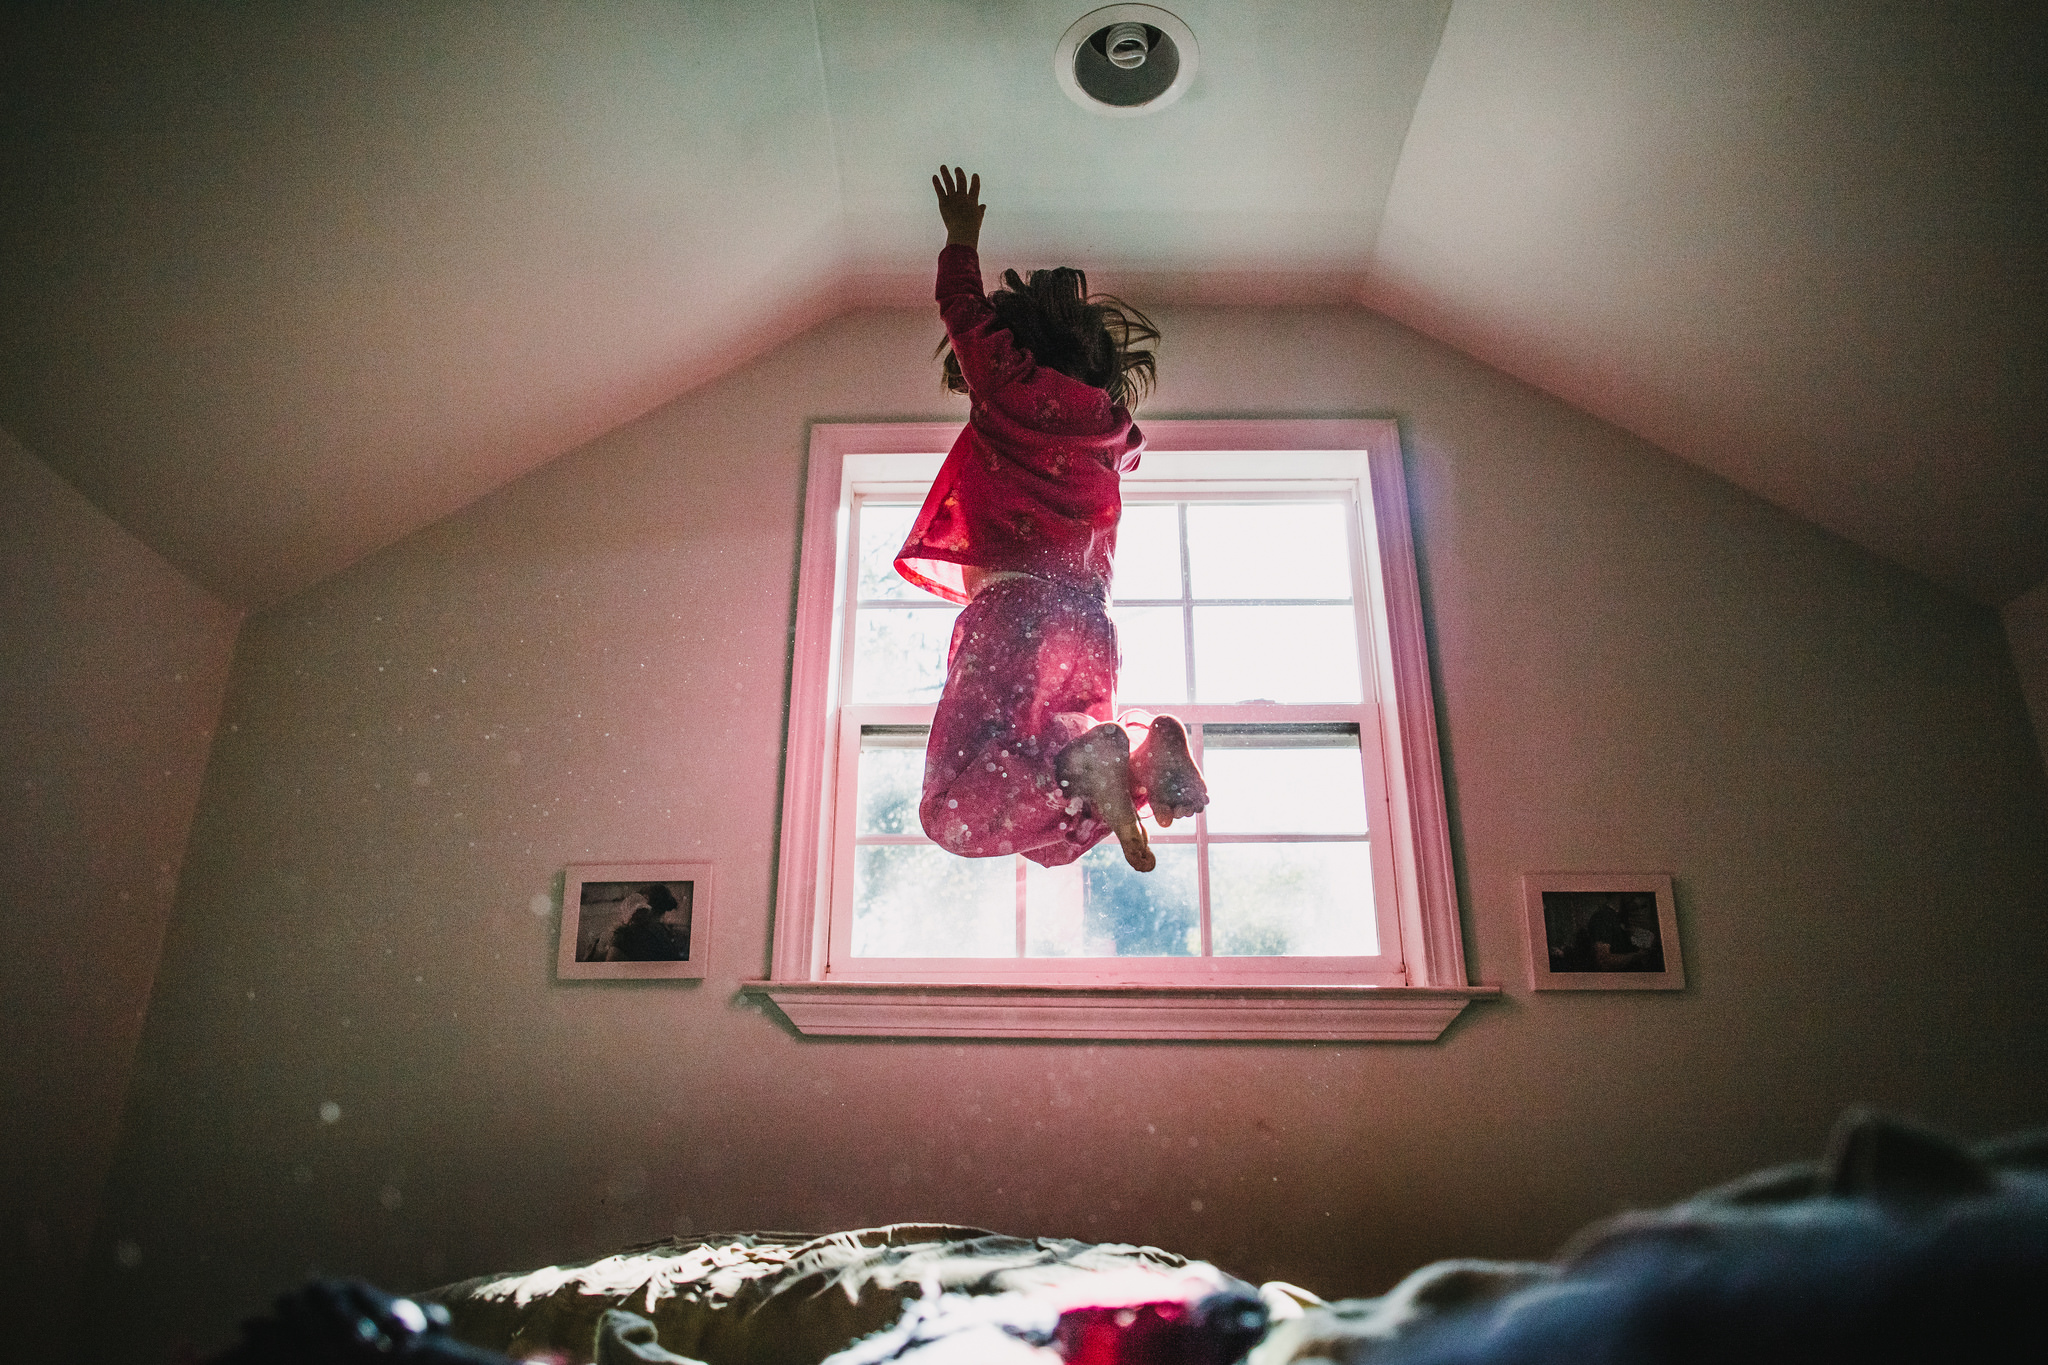 Girl in her pajamas jumping on a bed in the window light with dust floating